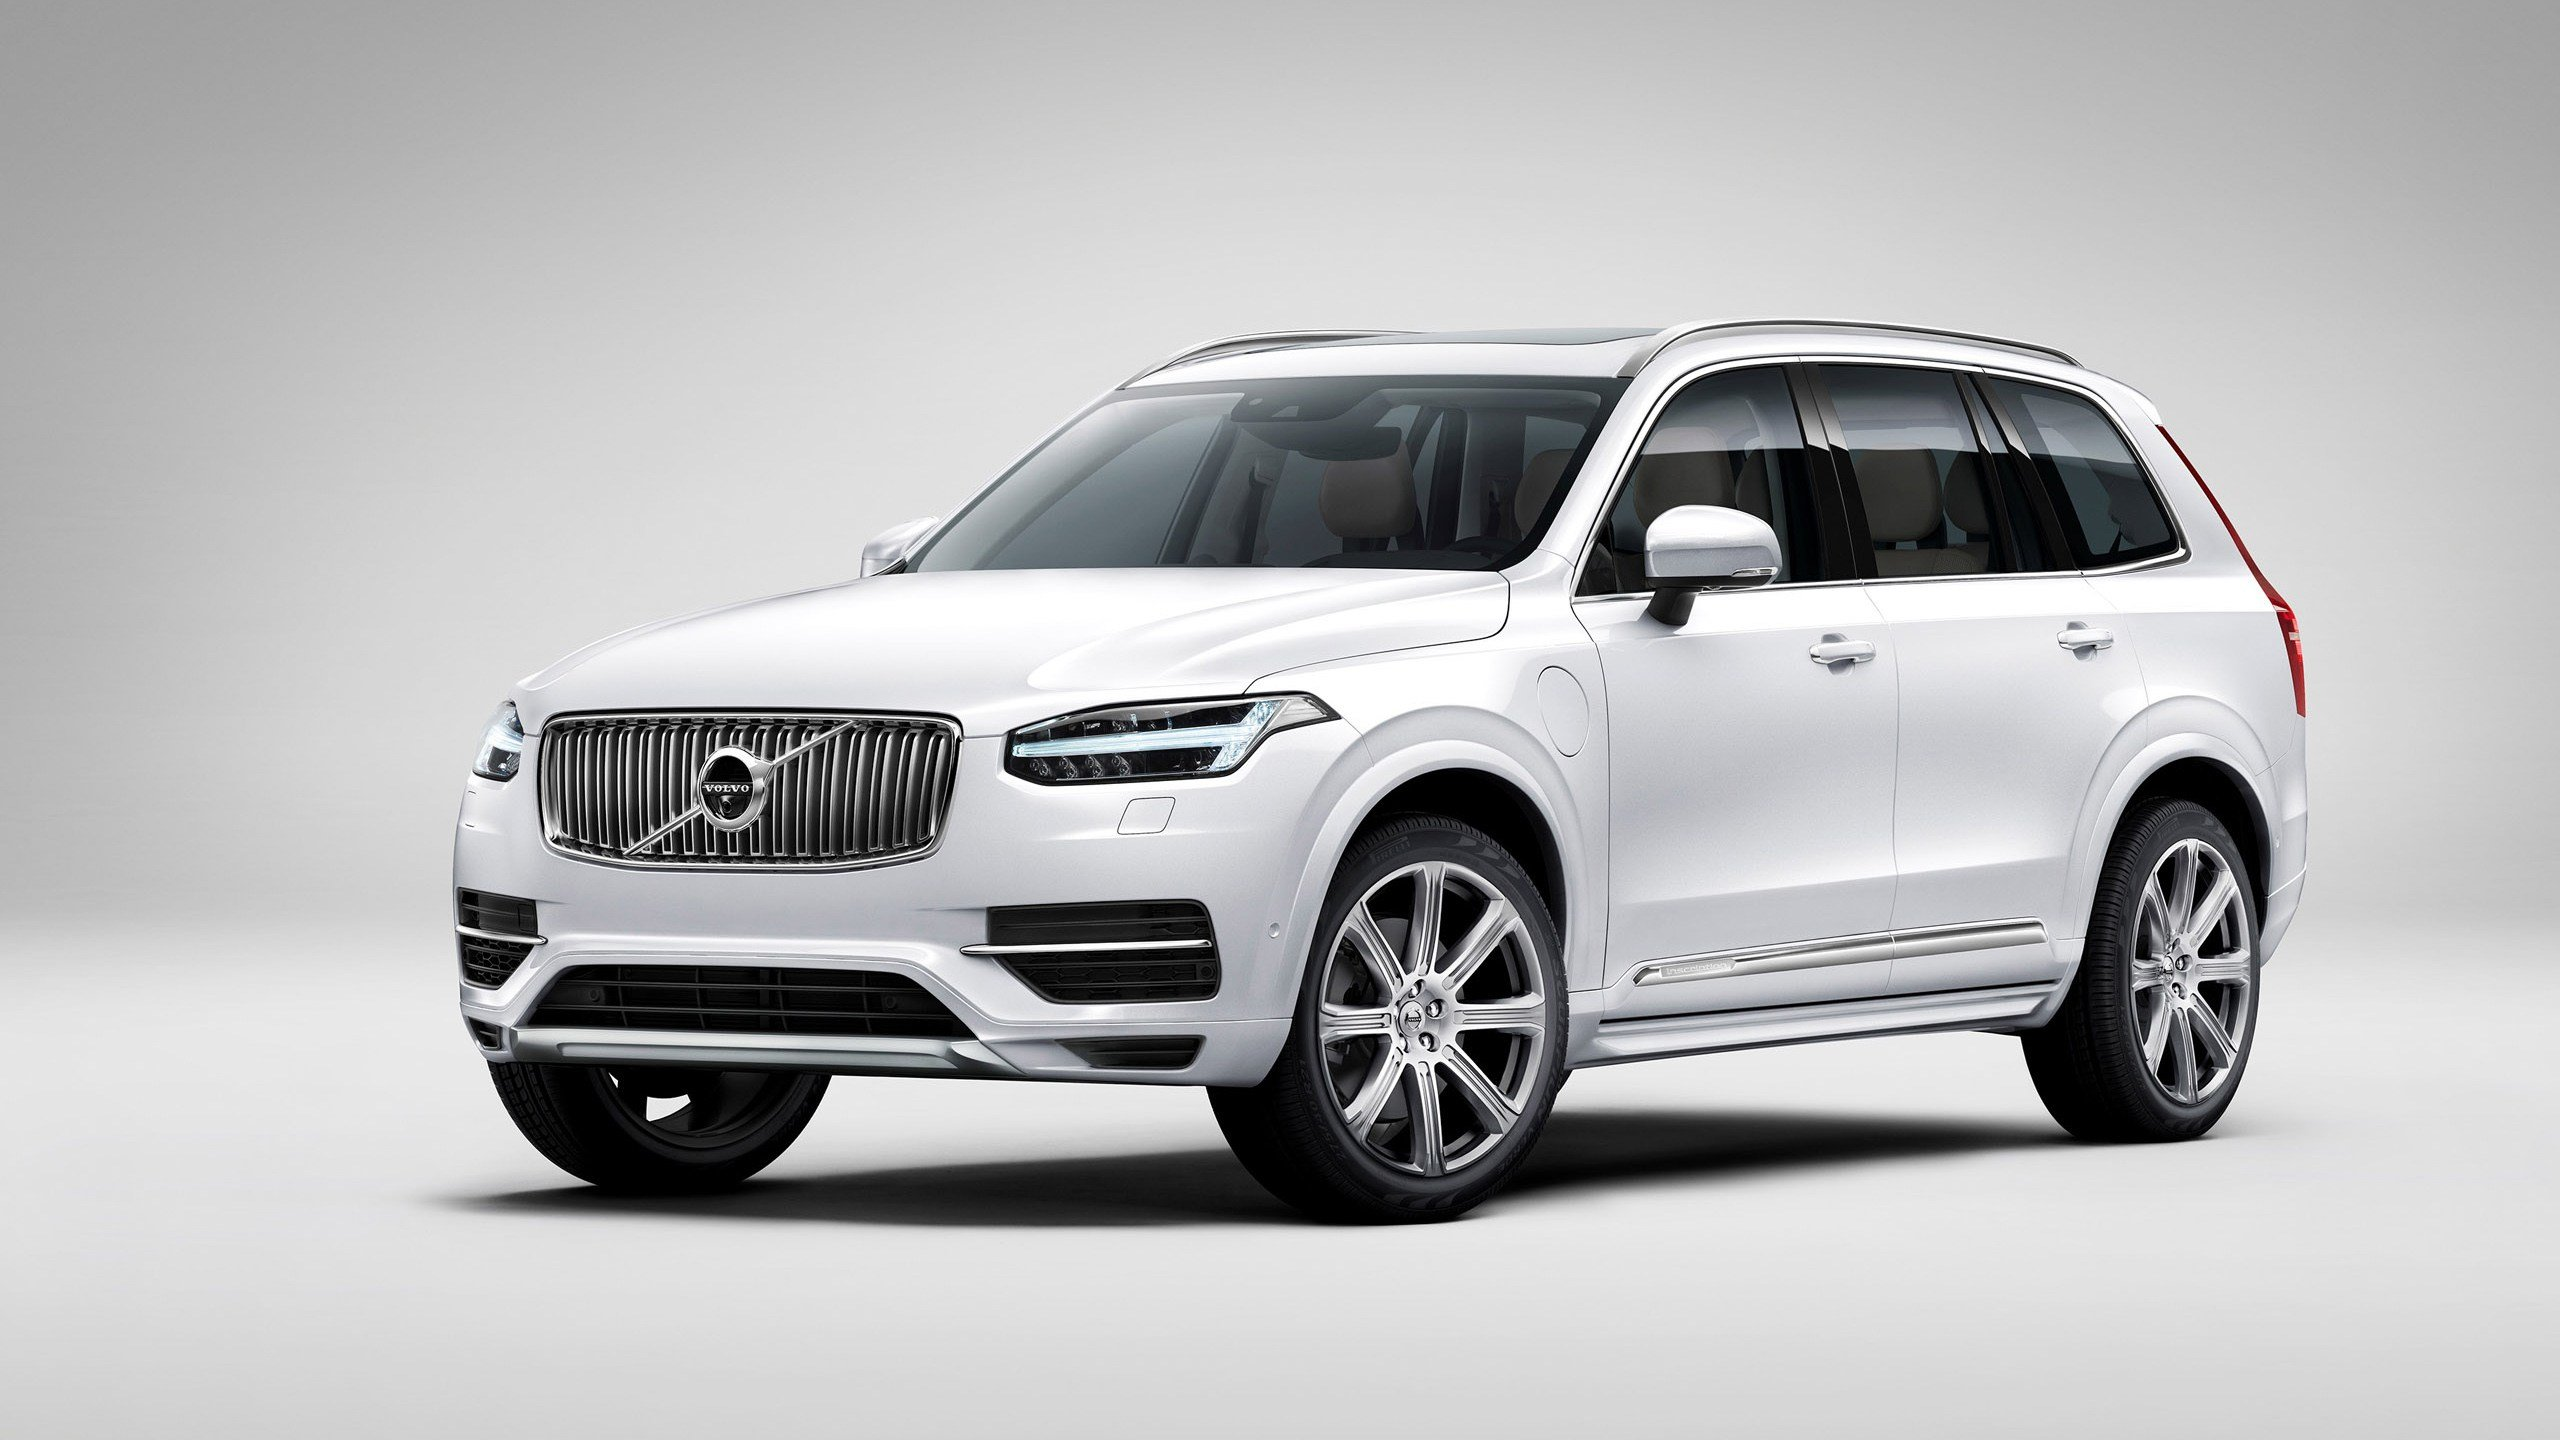 New Volvo Xc90 2015 Wallpaper Hd Car Wallpapers Id 4802 On This Month